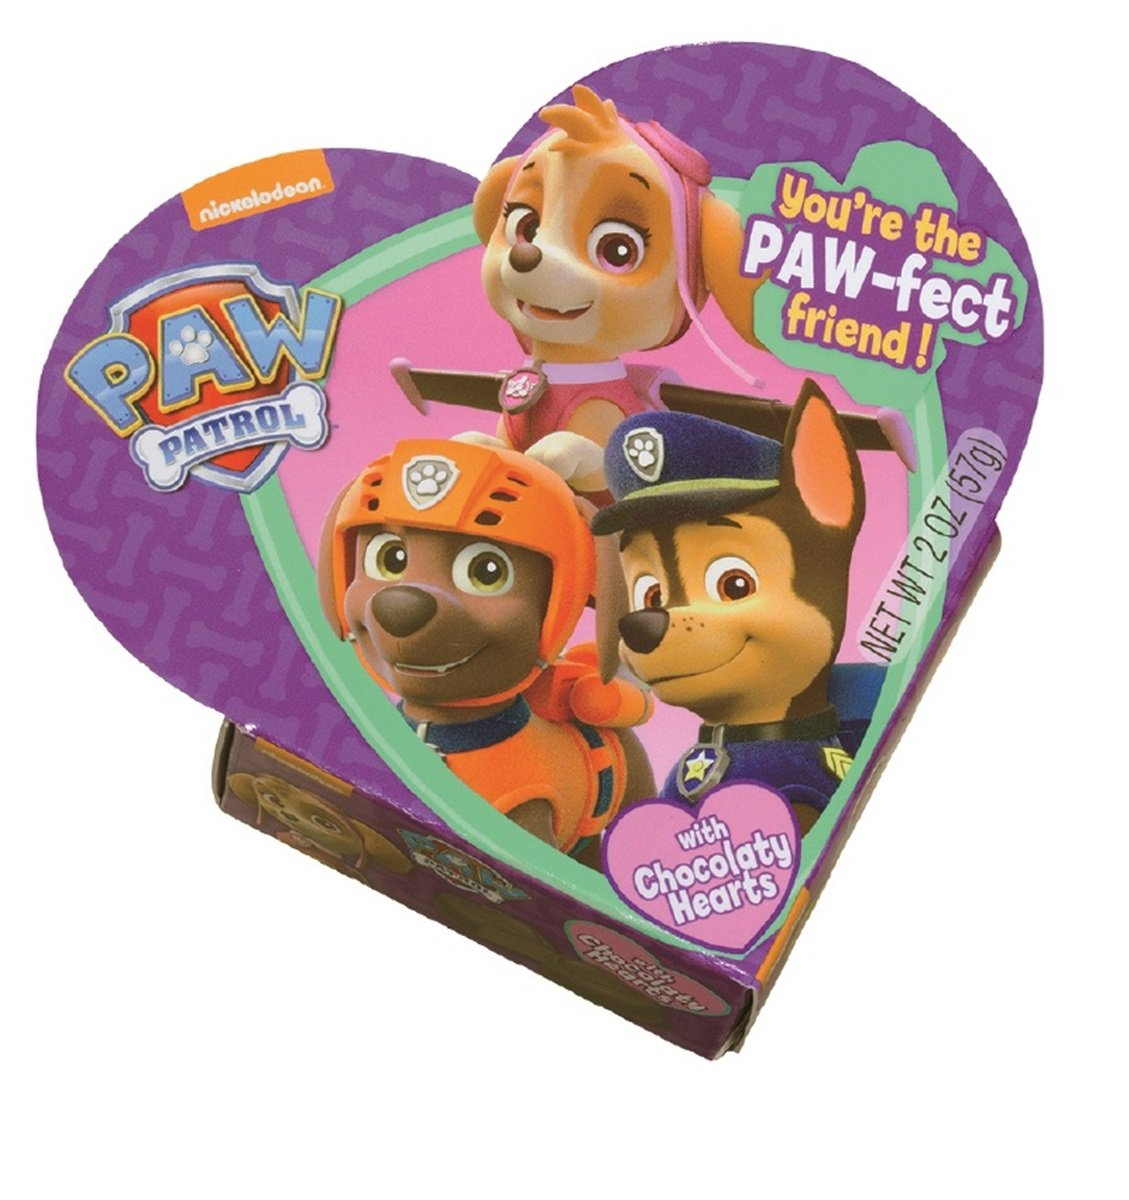 Amazon.com : Nickelodeon PAW Patrol Valentines Day Heart Gift Box with Chocolate Heart Candy, 2